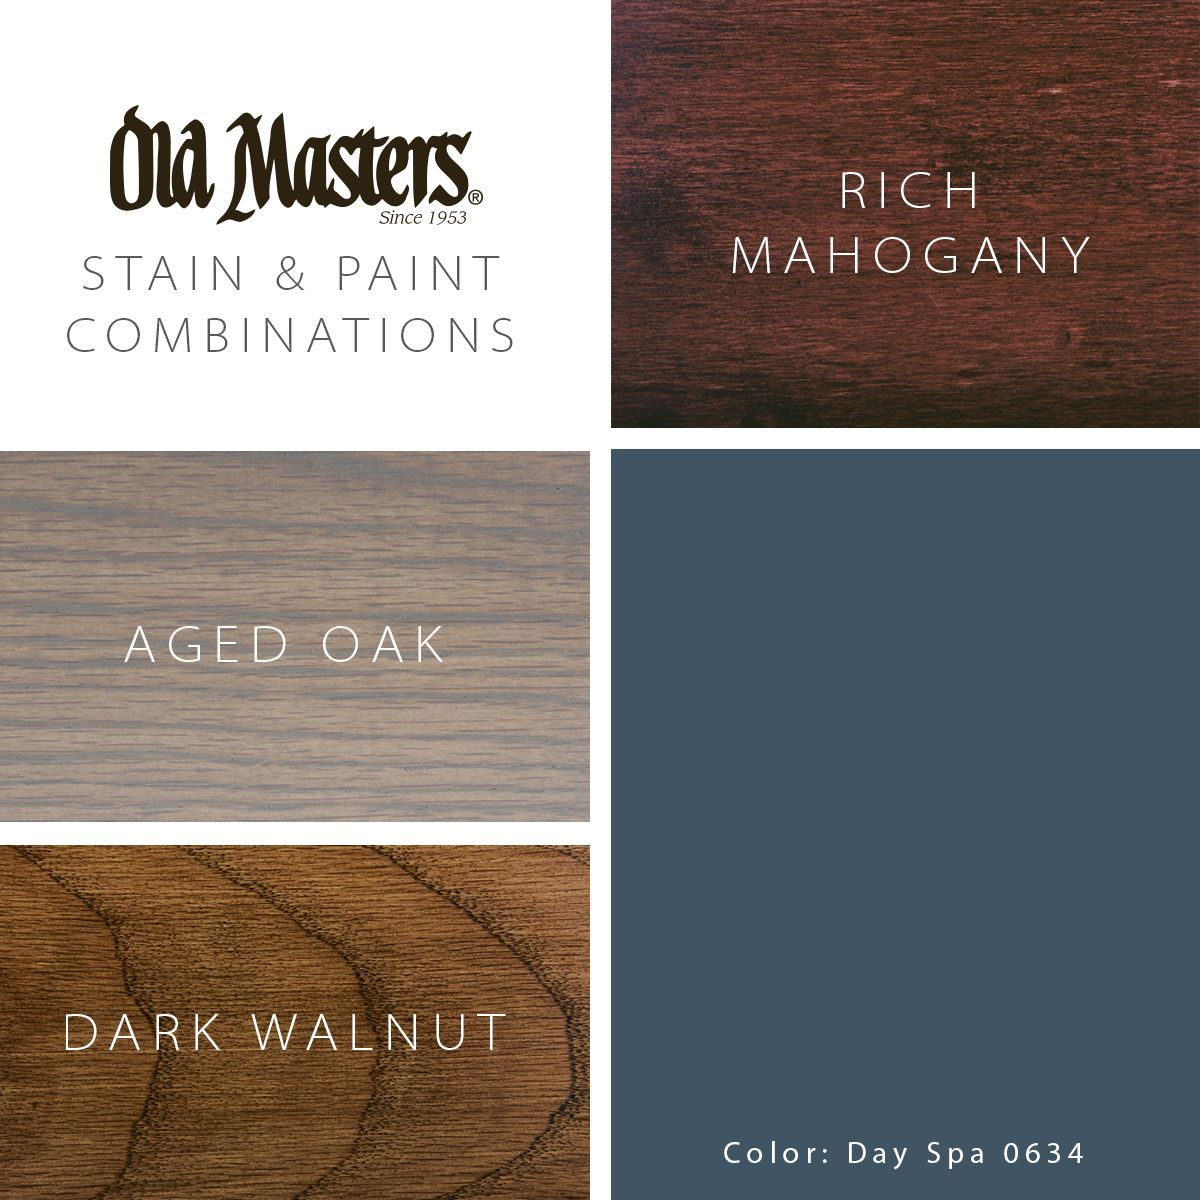 Summer Paint Stain Combos For Your Home Staining Wood Wood Stain Colors Walnut Wood Texture